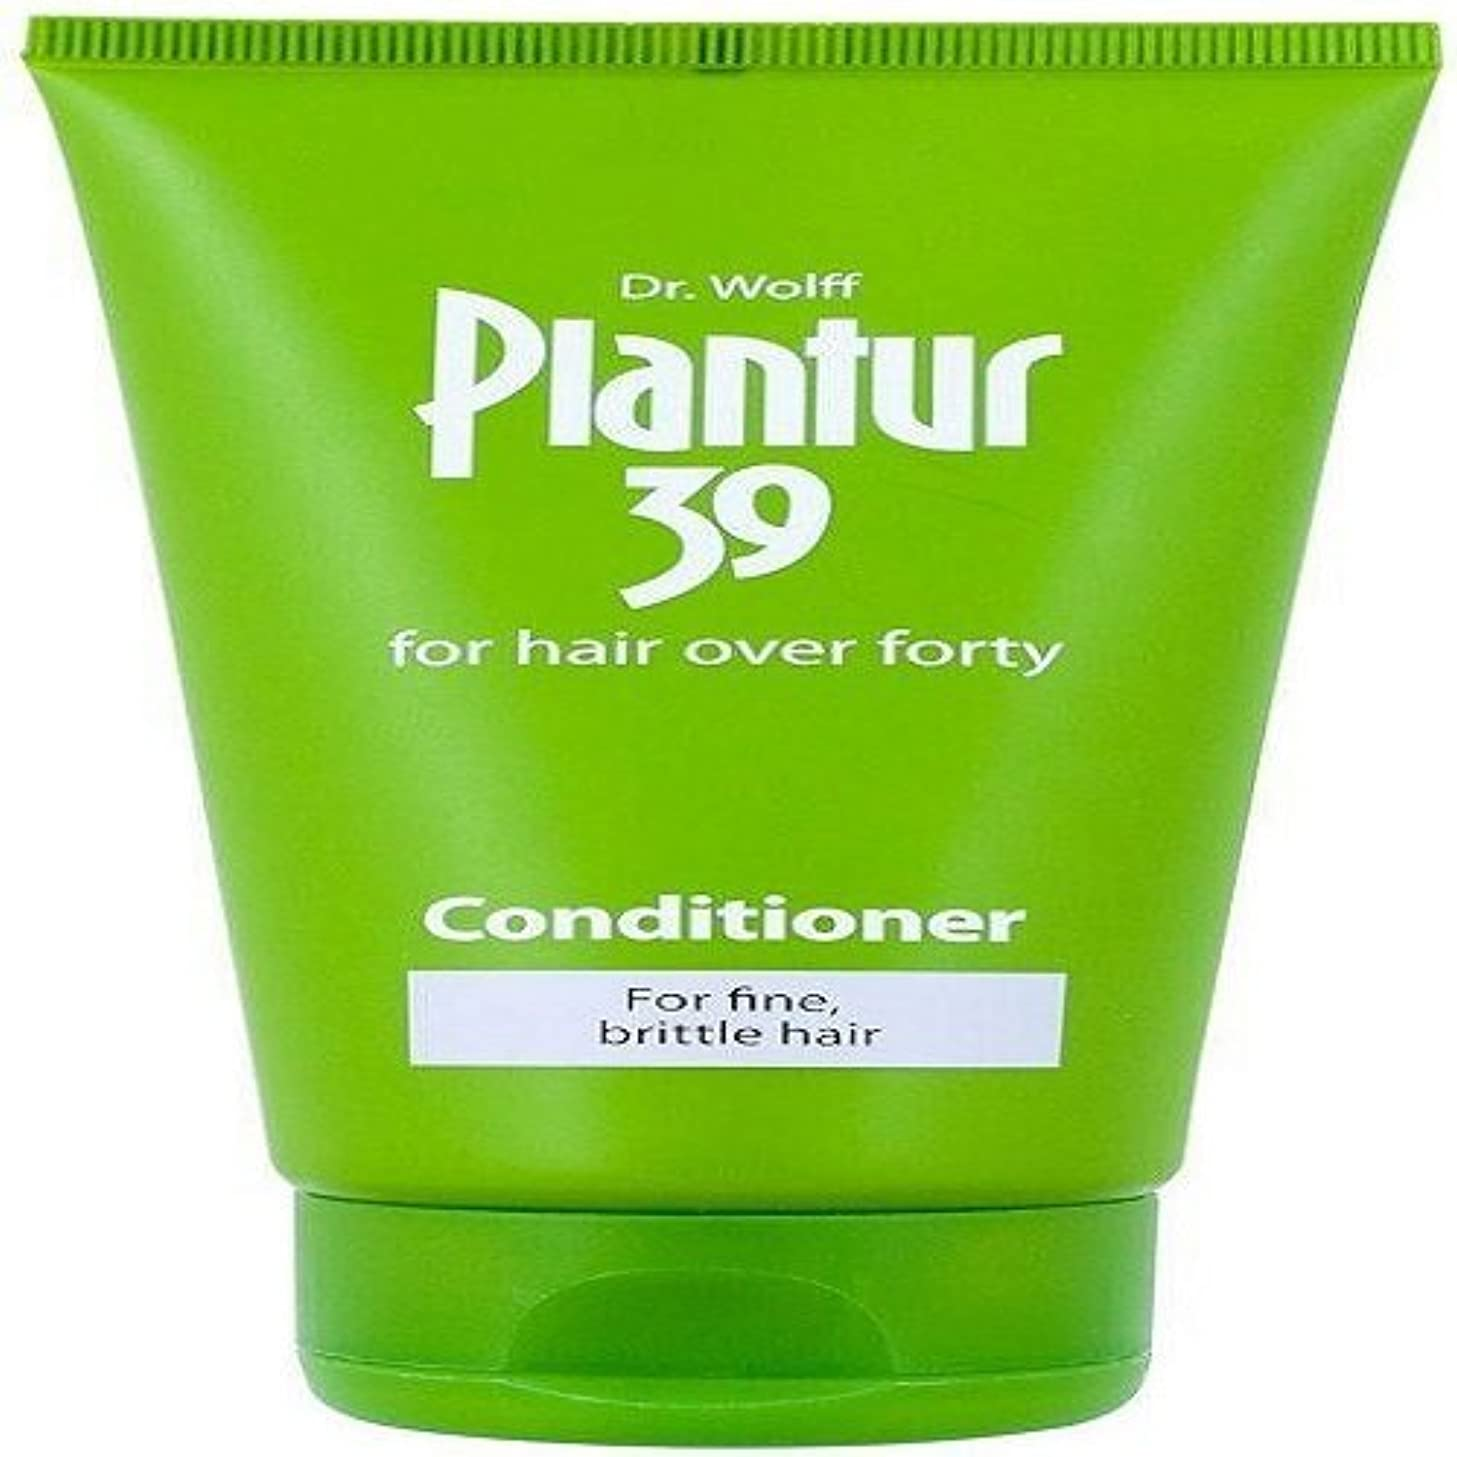 宗教的な障害罪人Plantur 39 150ml Fine & Brittle hair conditioner by Plantur